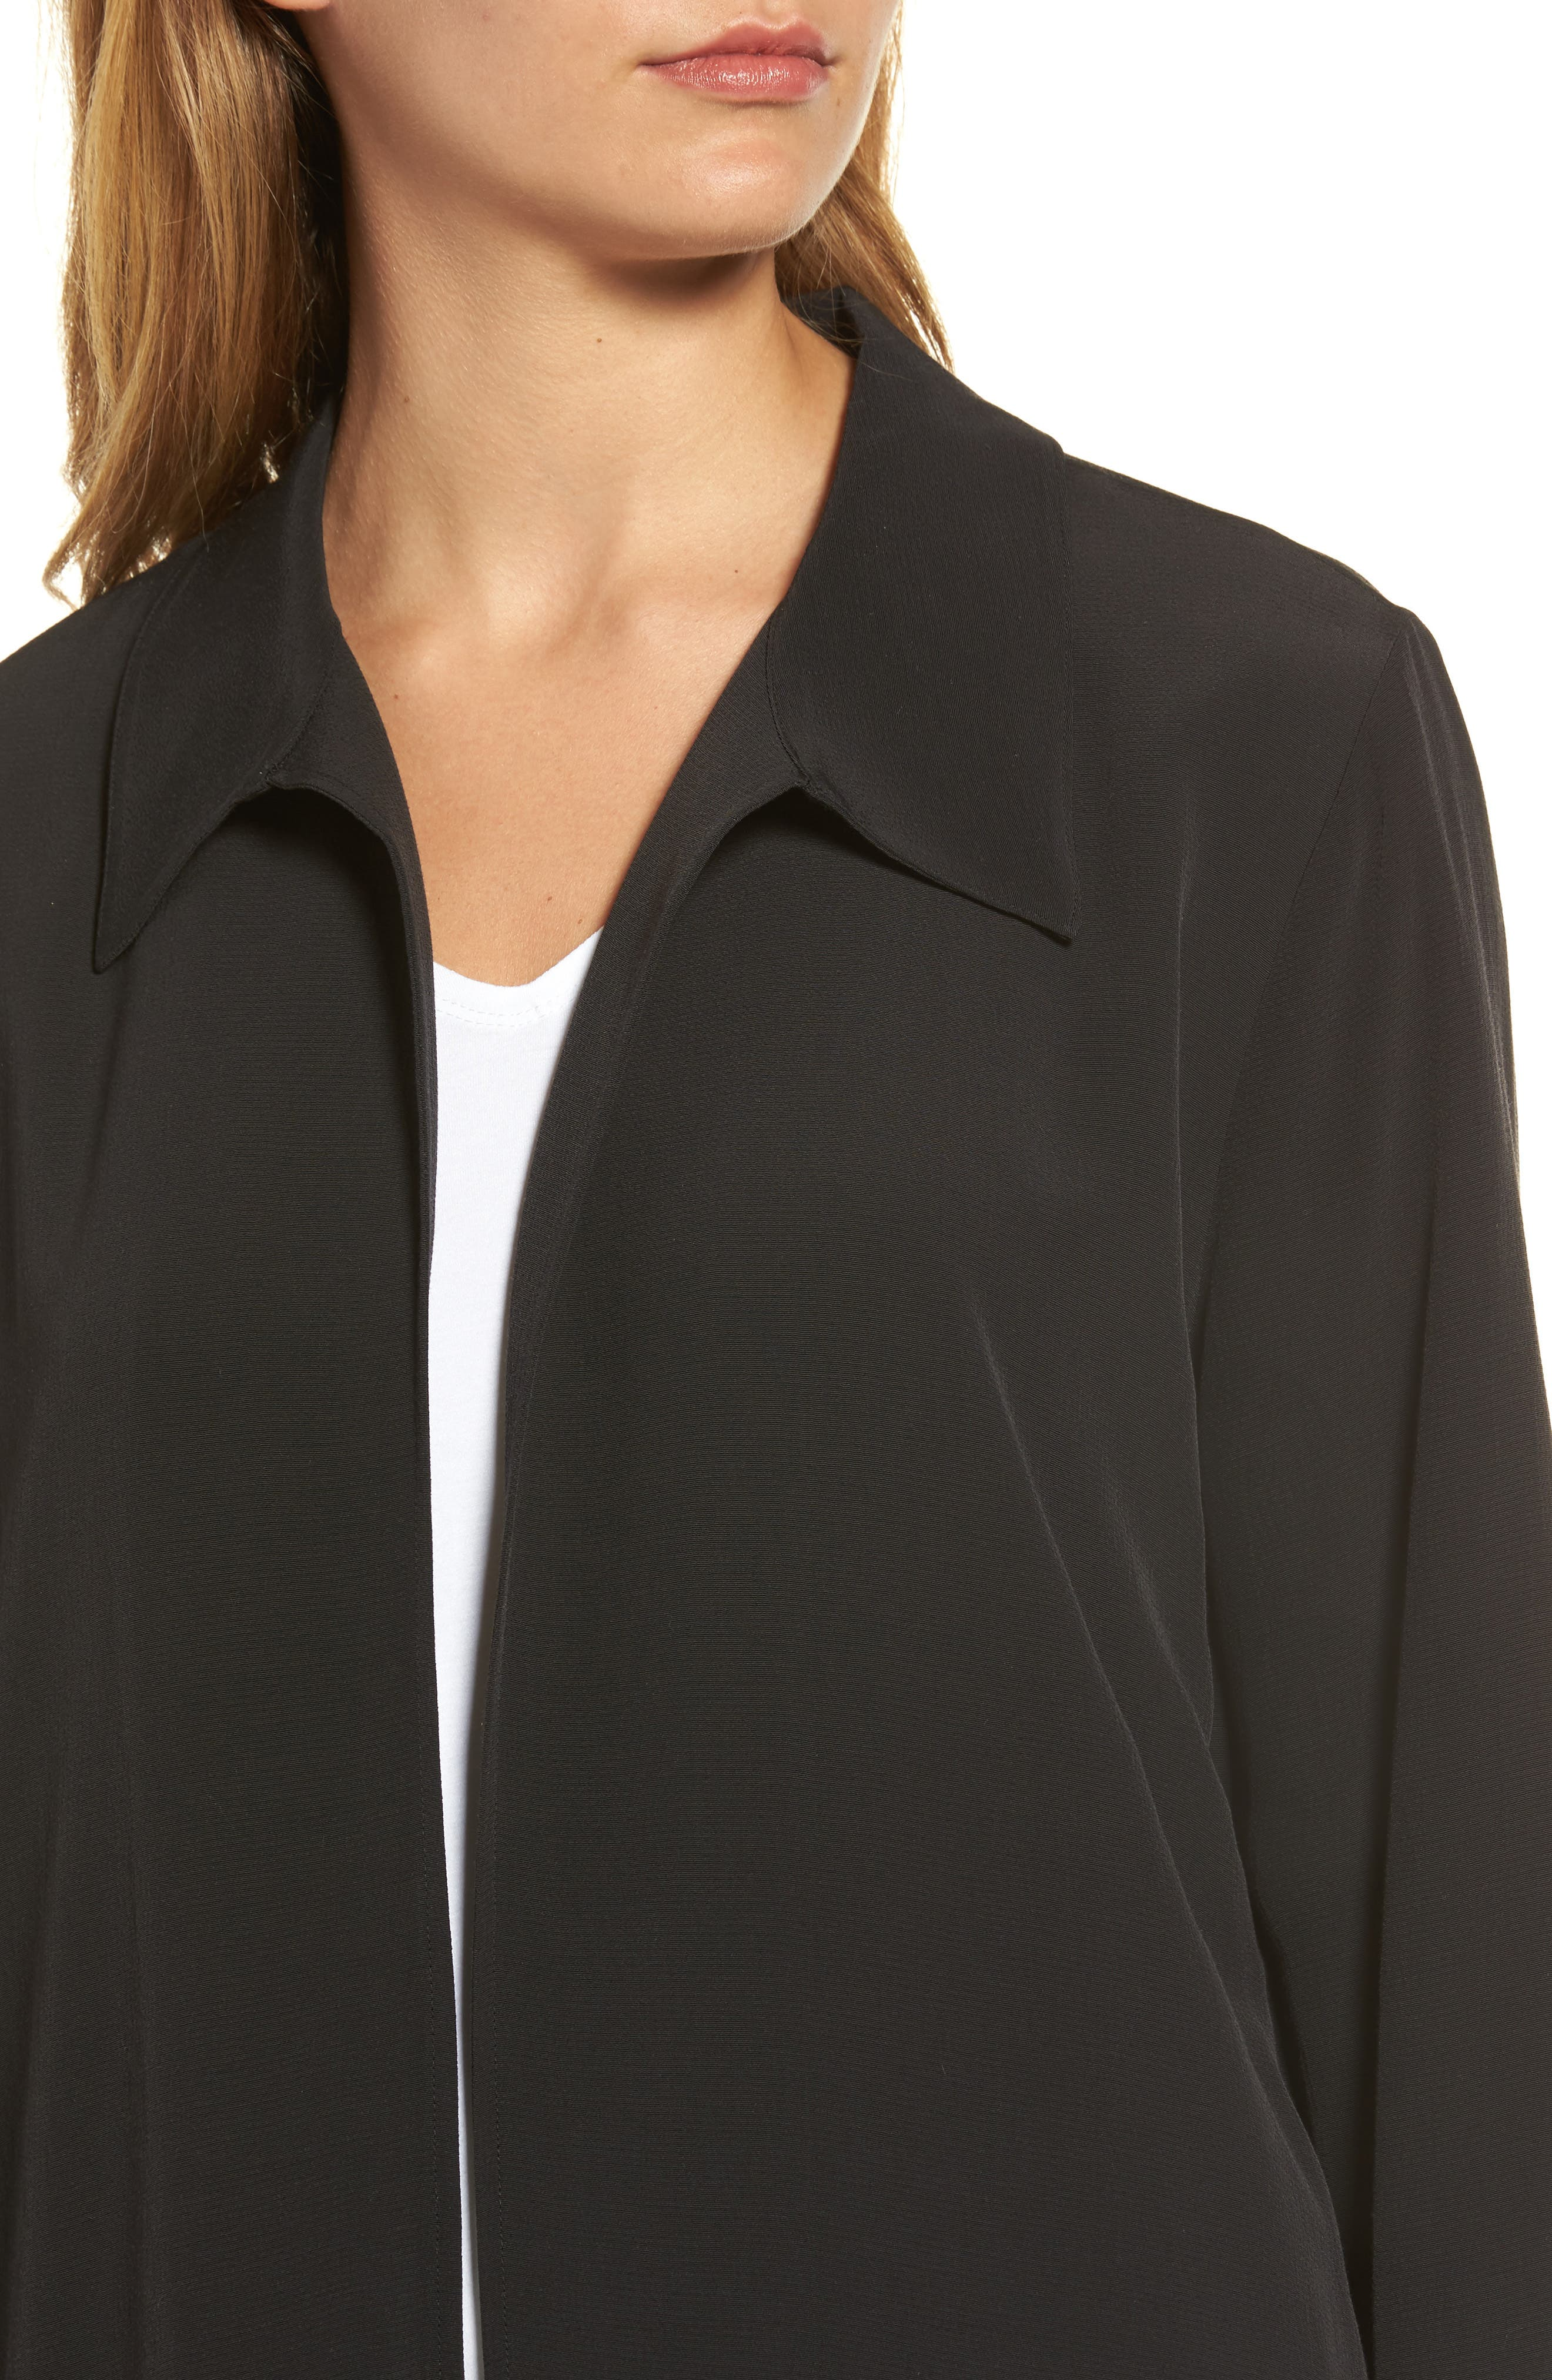 Open Front Duster Jacket,                             Alternate thumbnail 4, color,                             001